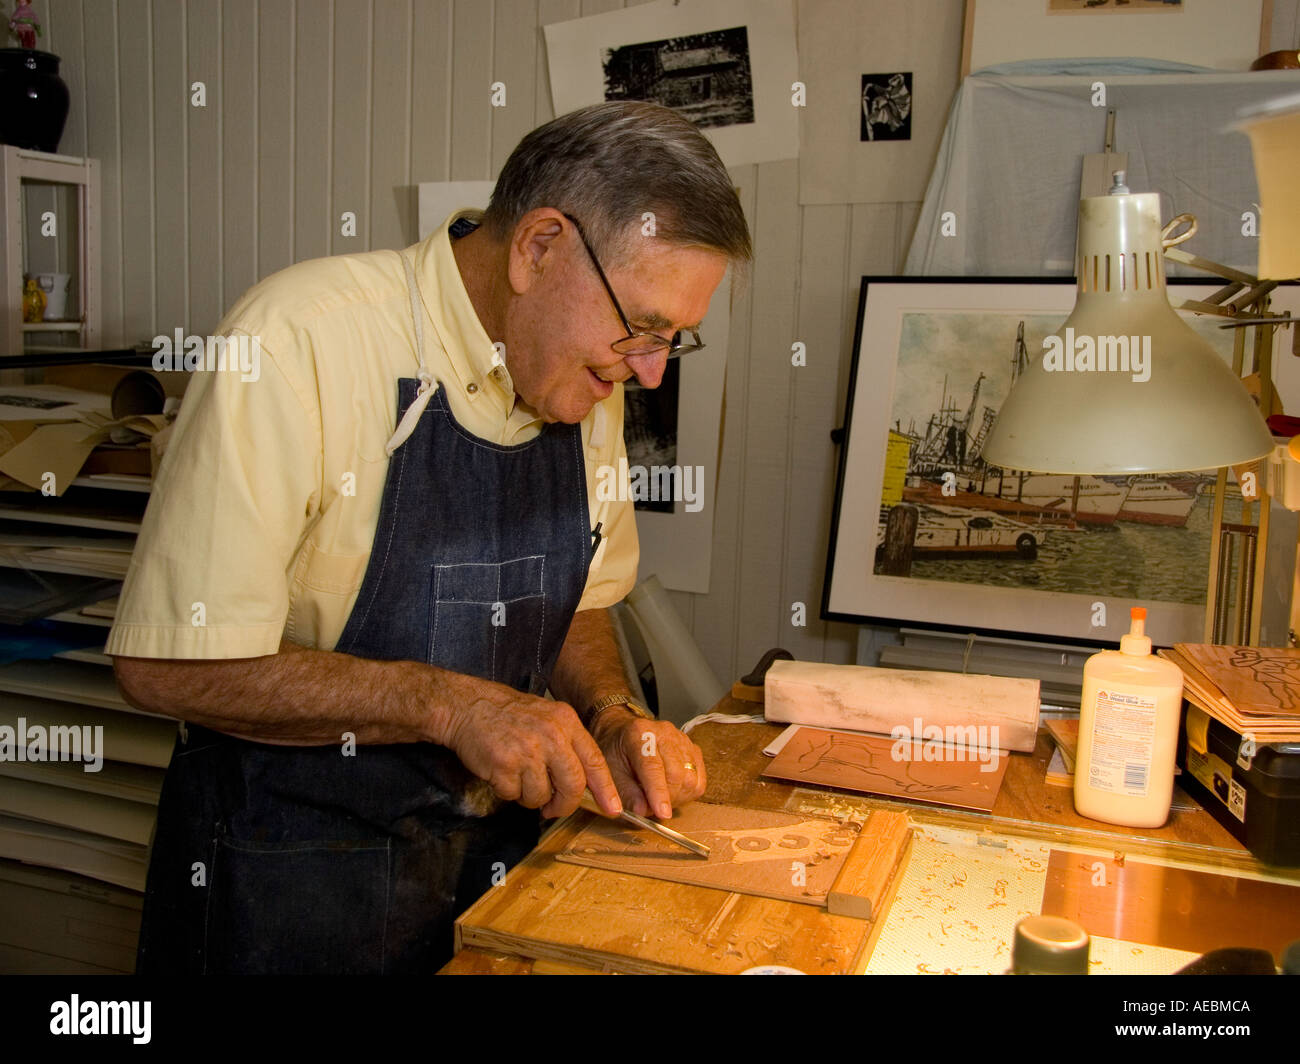 Mature Printmaker at Work, An older male artist creates a woodcut in his studio Stock Photo